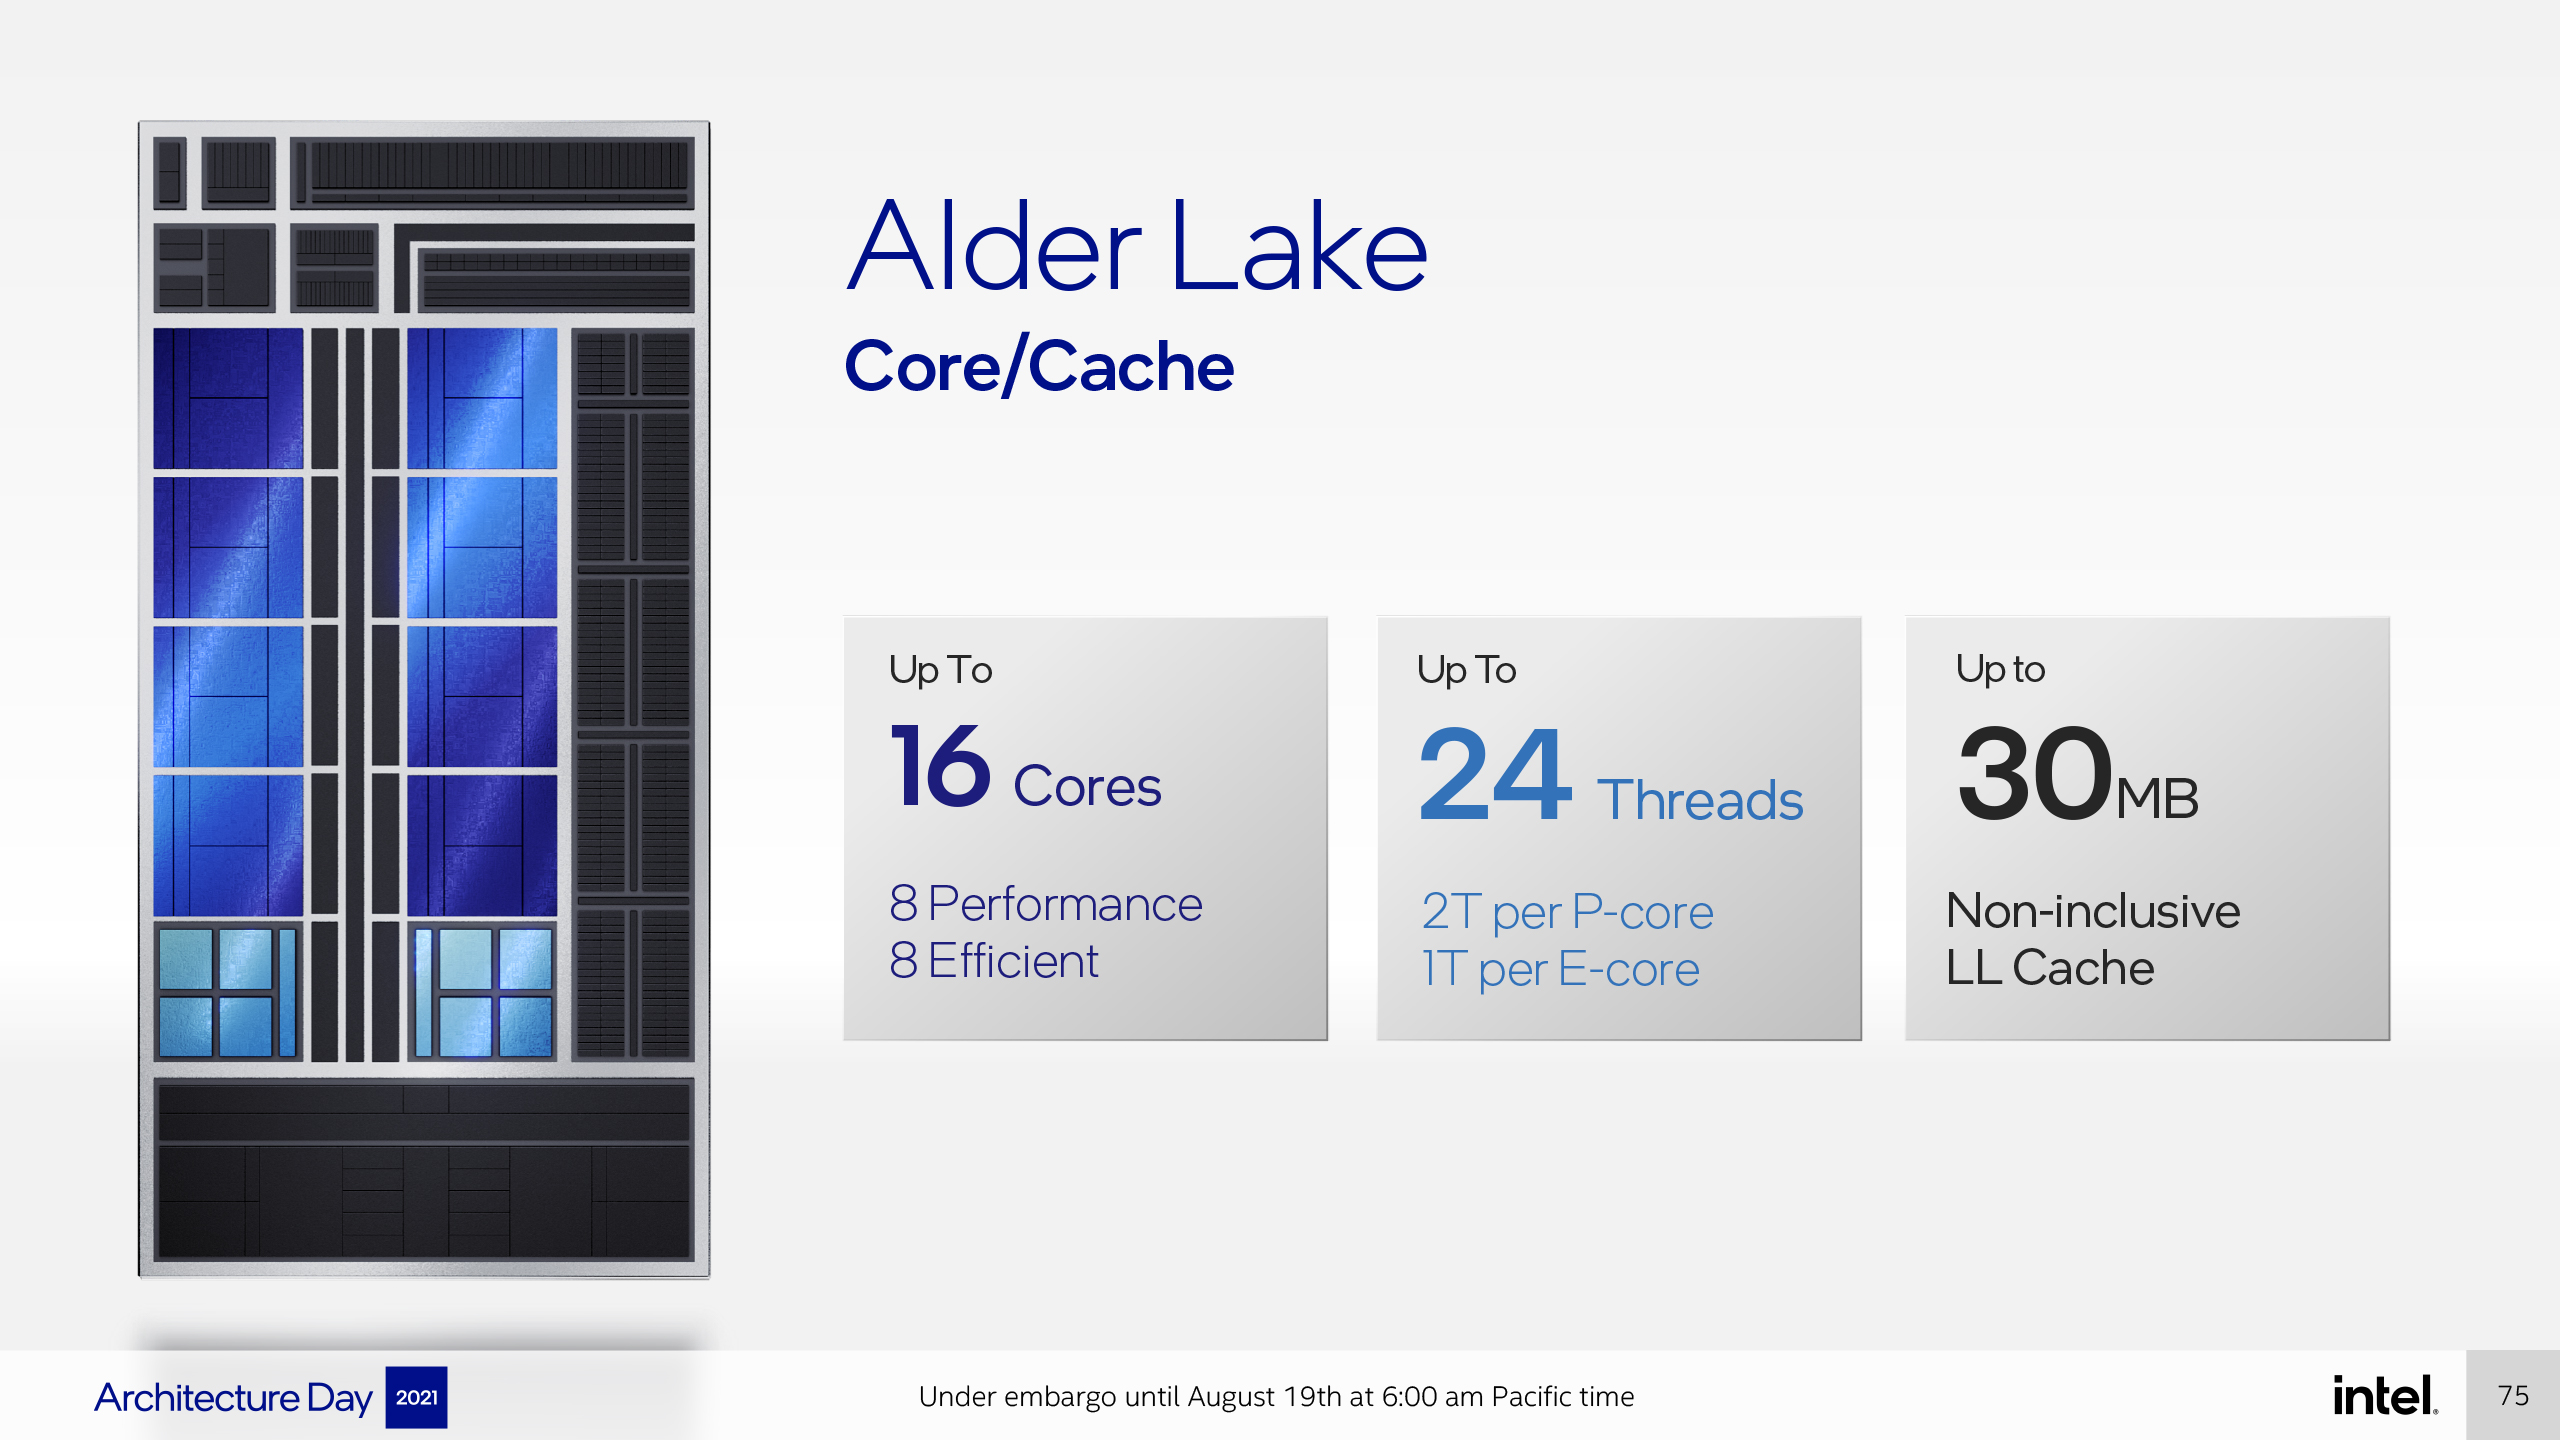 Intel Alder Lake specifications slide listing up to 24 threads and 8+8 core design